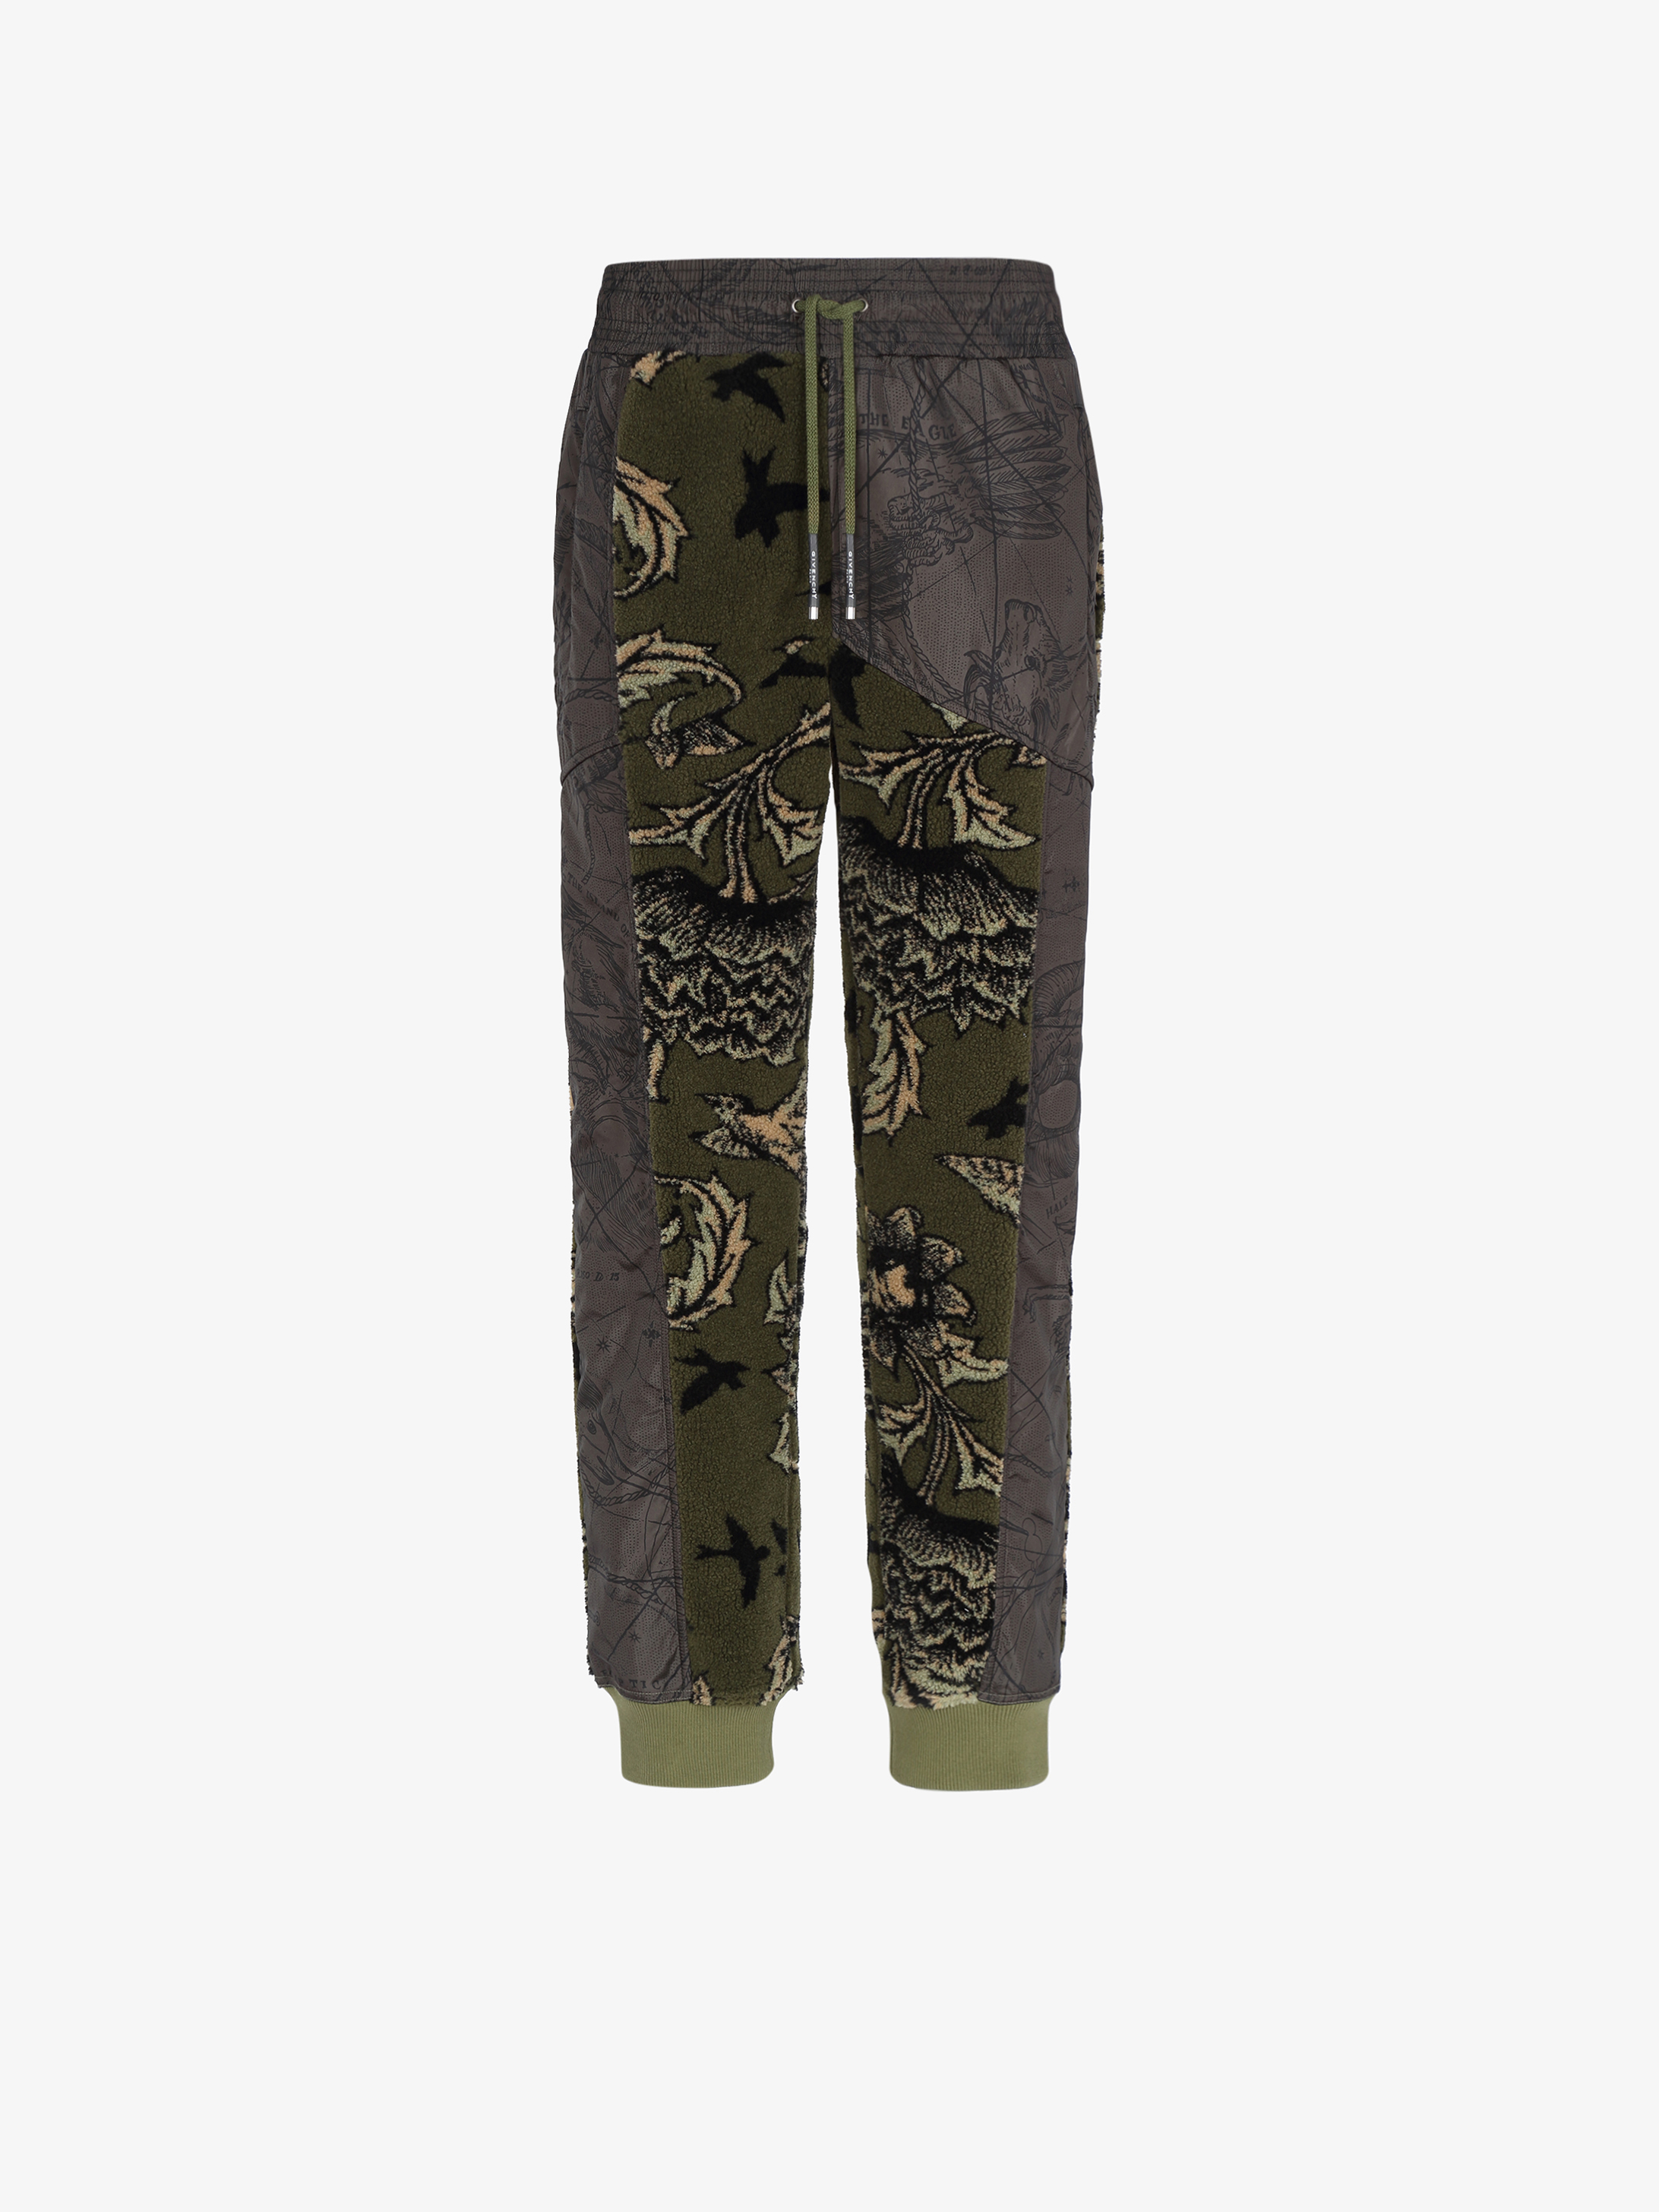 Jogger pants in floral pattern fleece and nylon